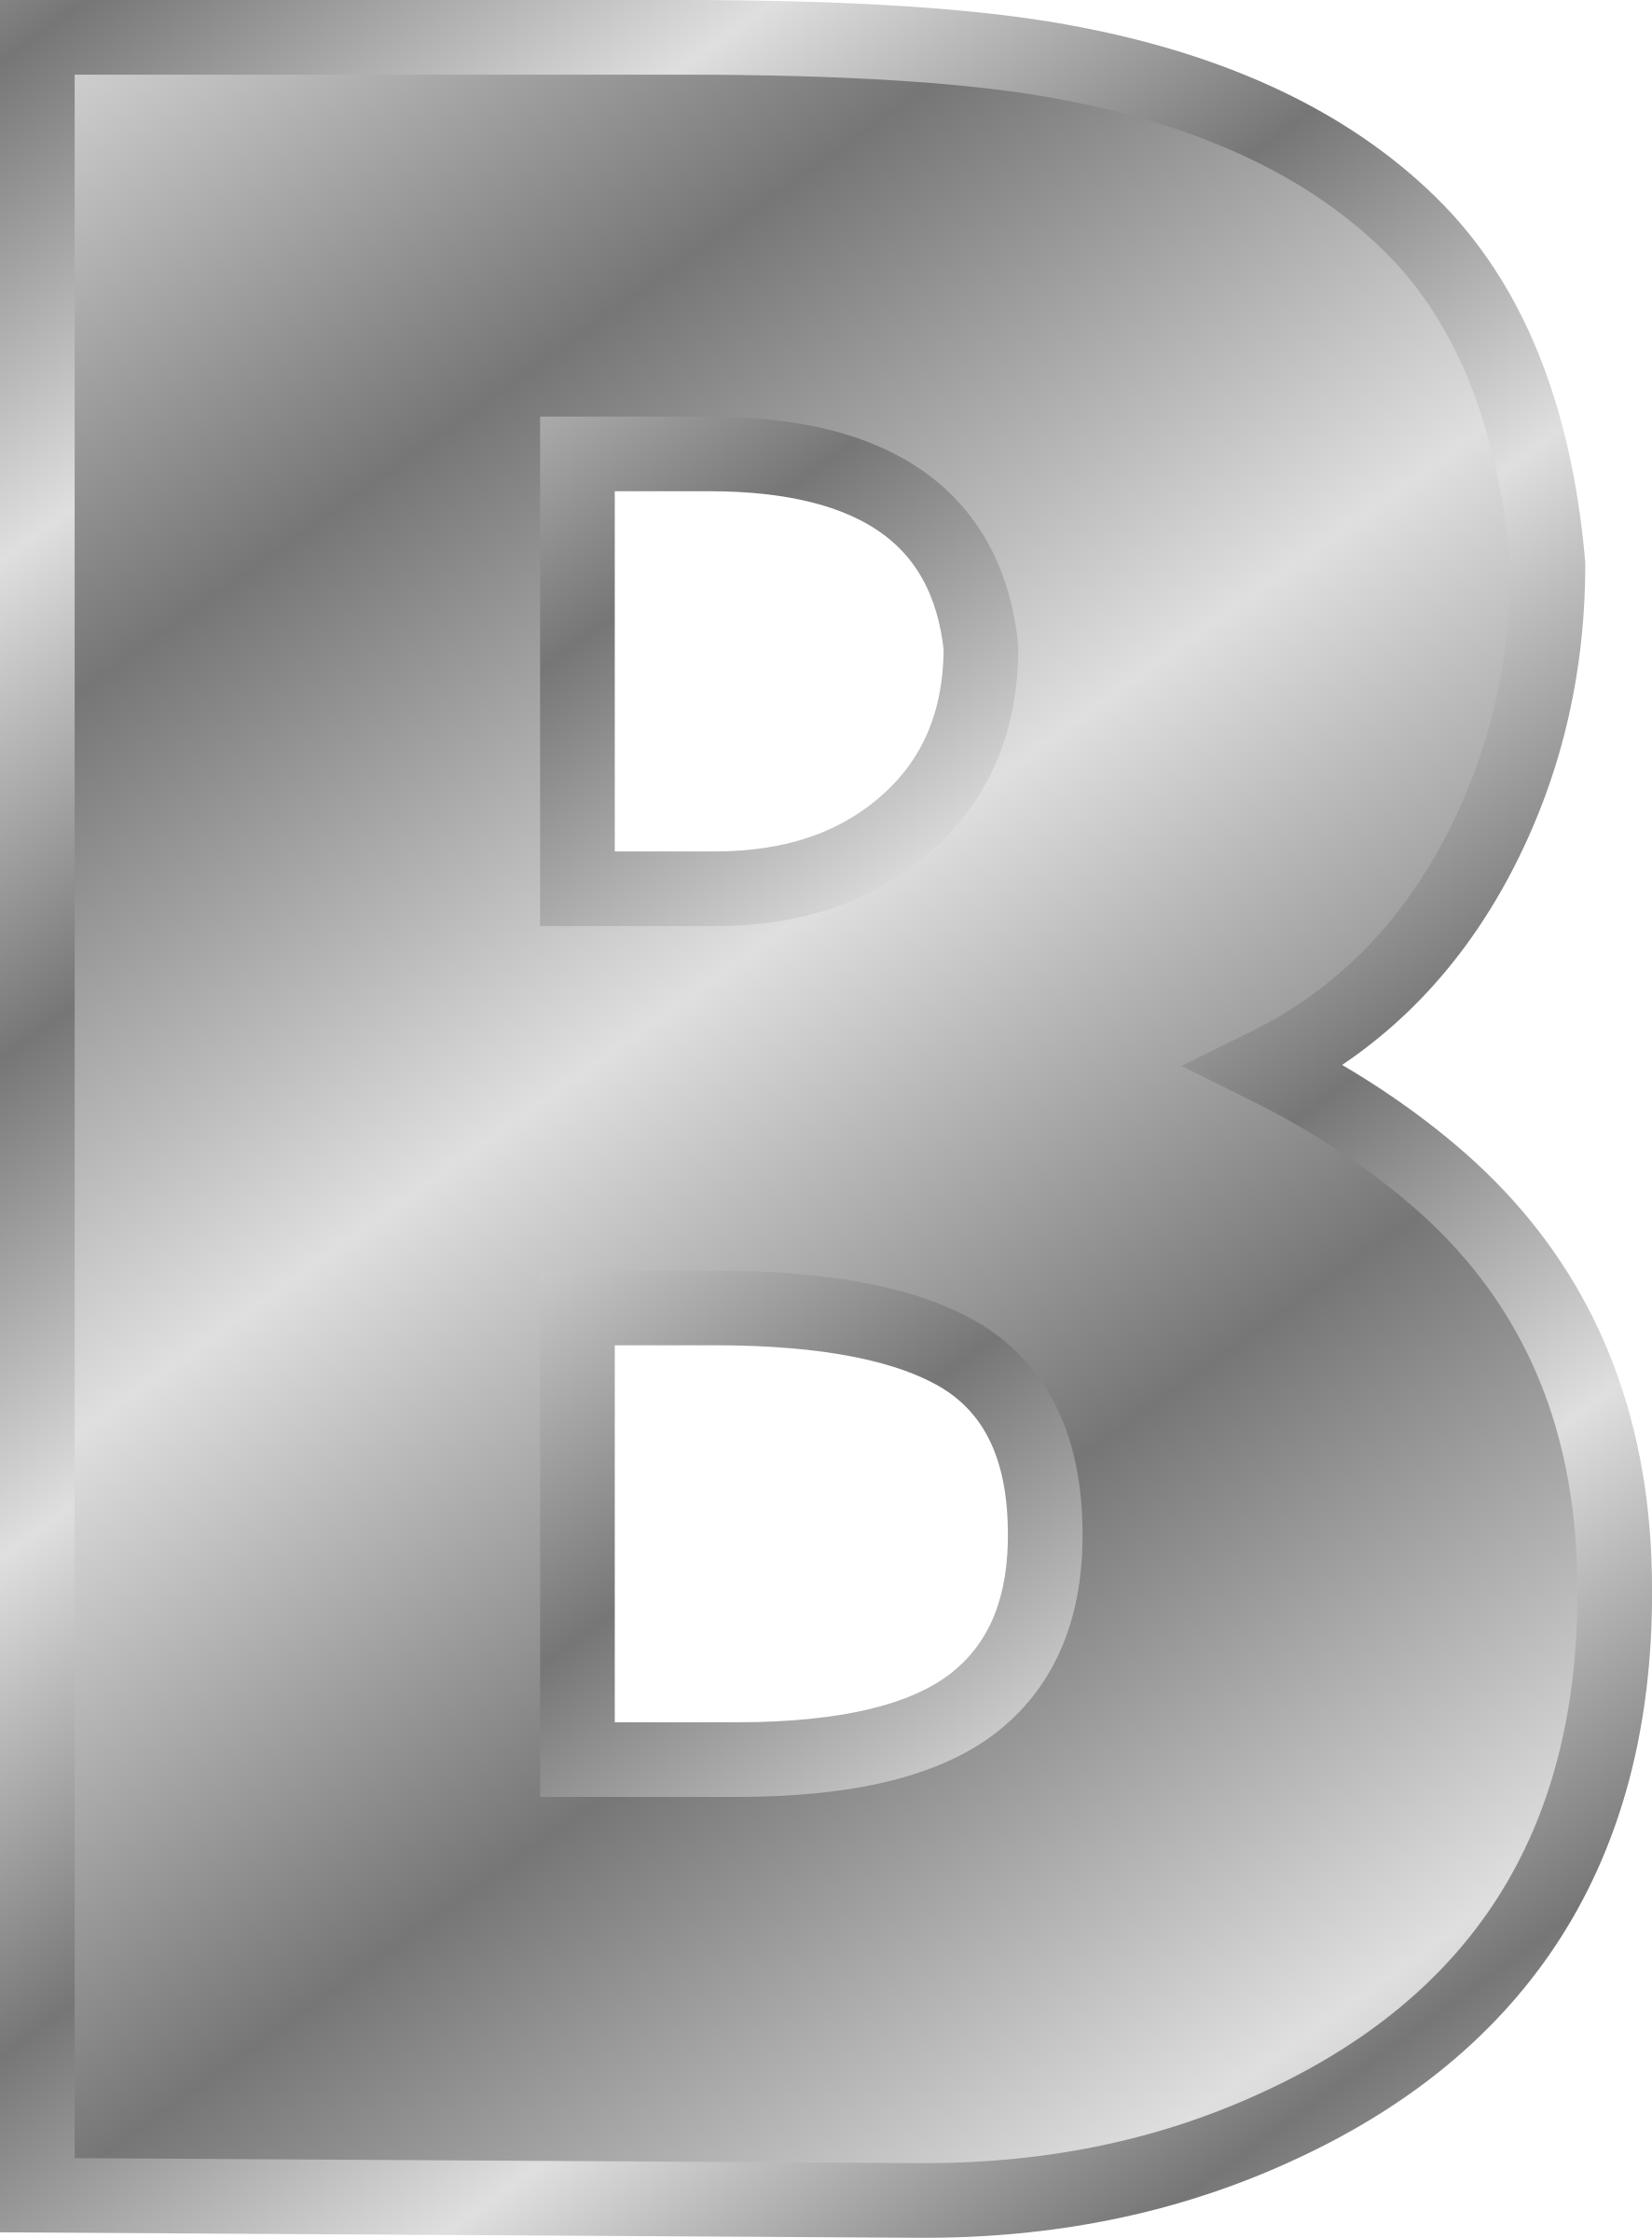 big image png With silver alphabet letters